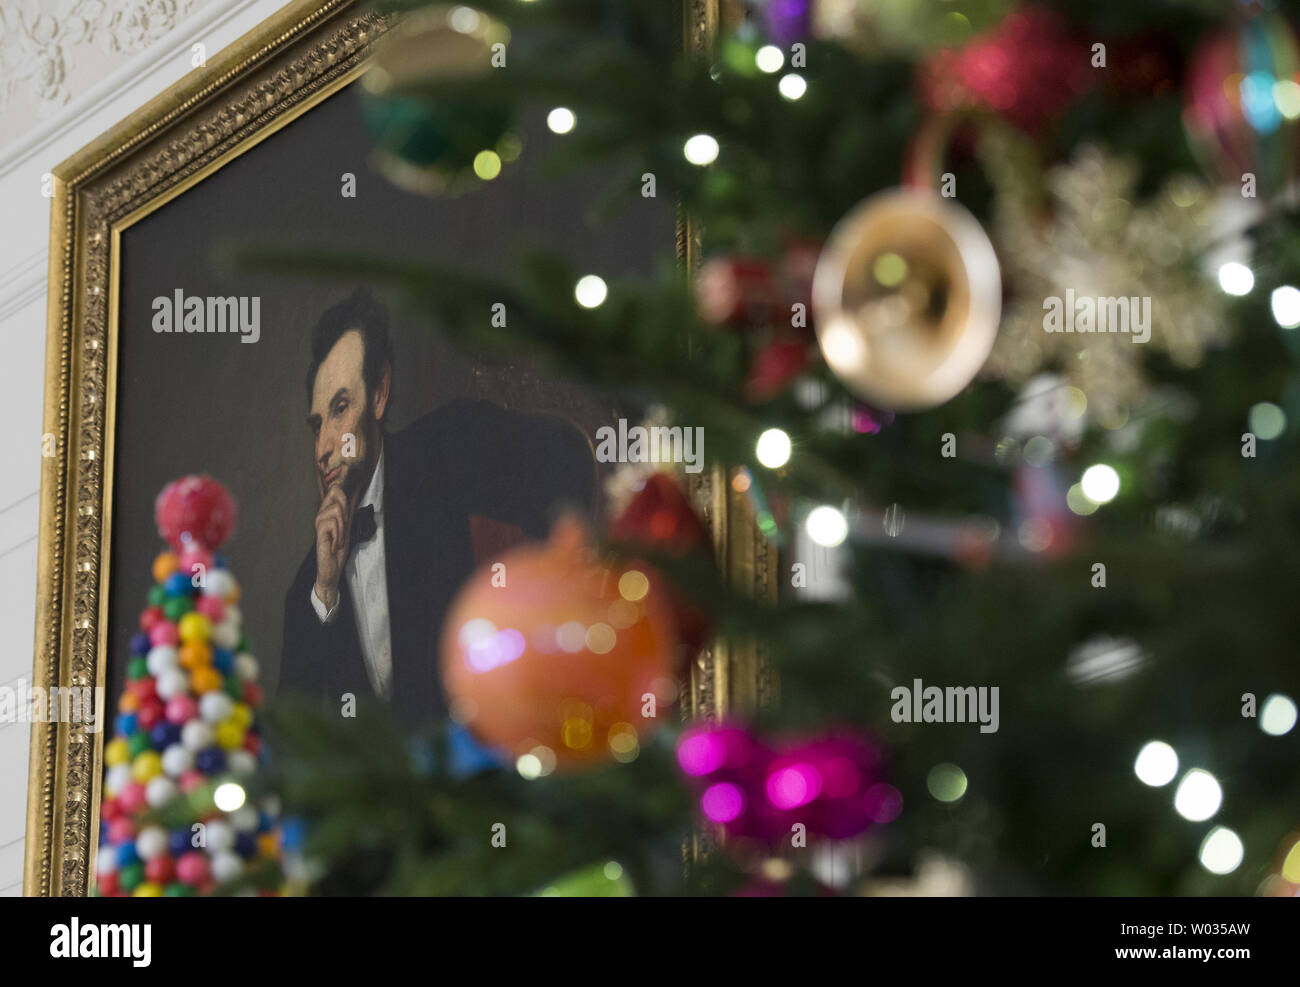 The State Dinning Room is seen decorated during a holiday tour at the White House in Washington, D.C. on December 2, 2015. This year's team is 'A Timeless Tradition, and reflects long-held traditions cherished across America and commemorates extradorinaiy moments that help shaped the county. Photo by Kevin Dietsch/UPI - Stock Image